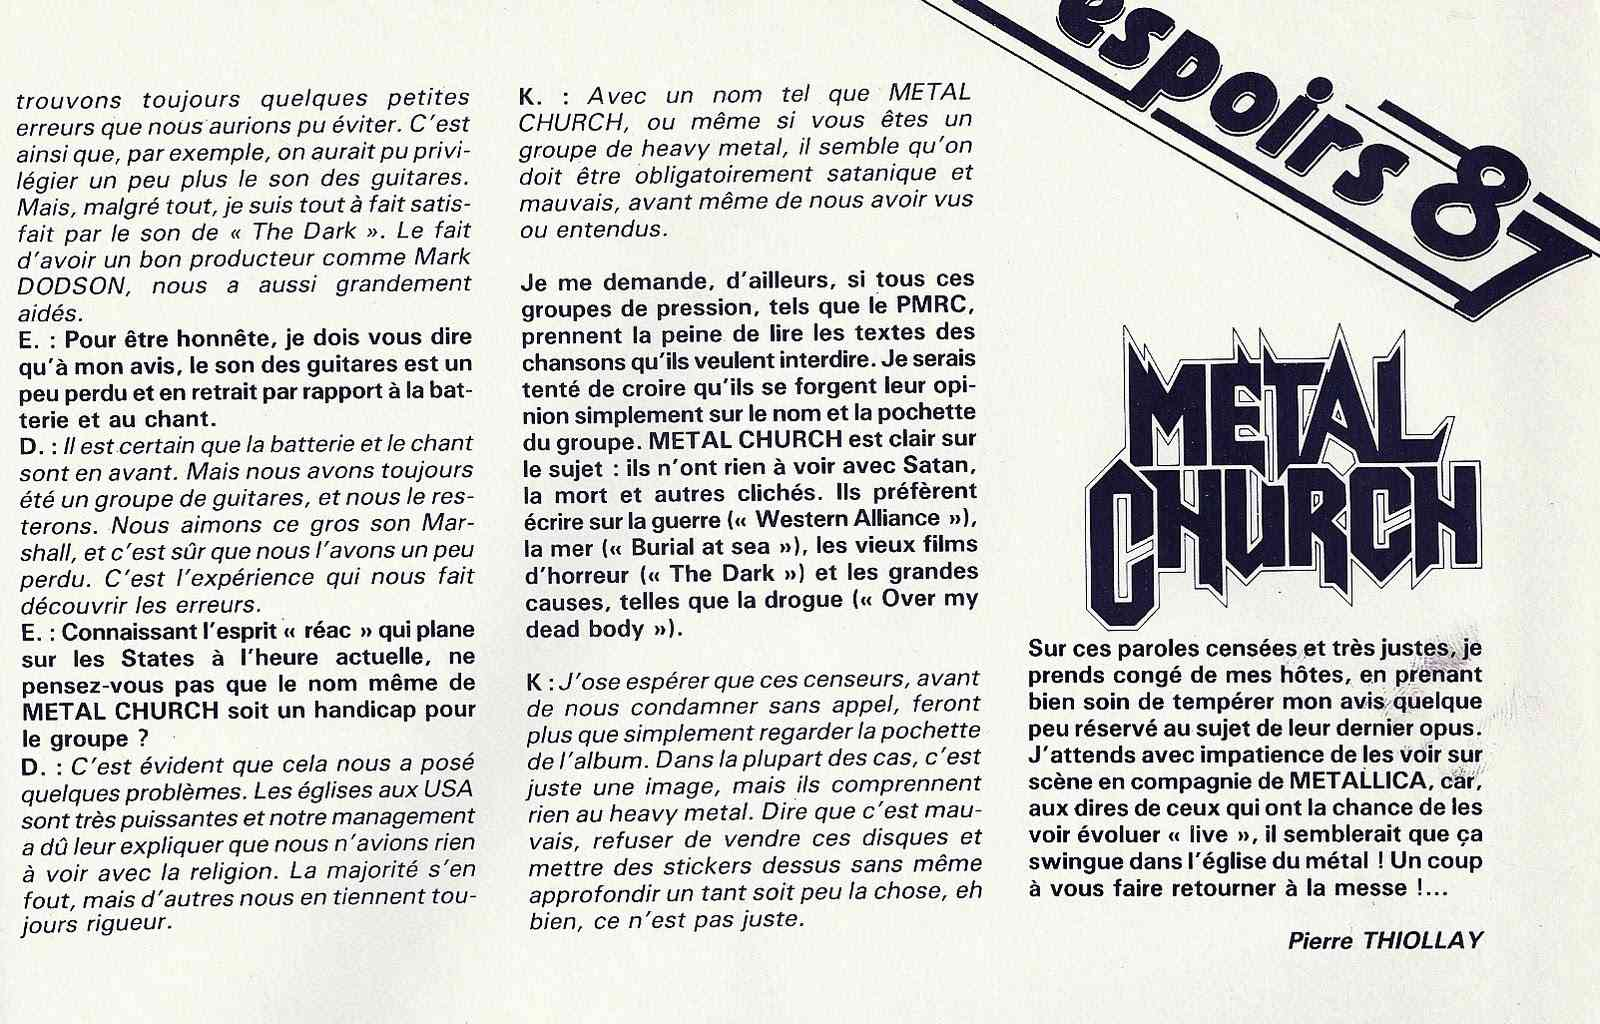 METAL CHURCH ... espoirs 87 (Enfer Magazine Février 1987) Archive à lire Numyri36